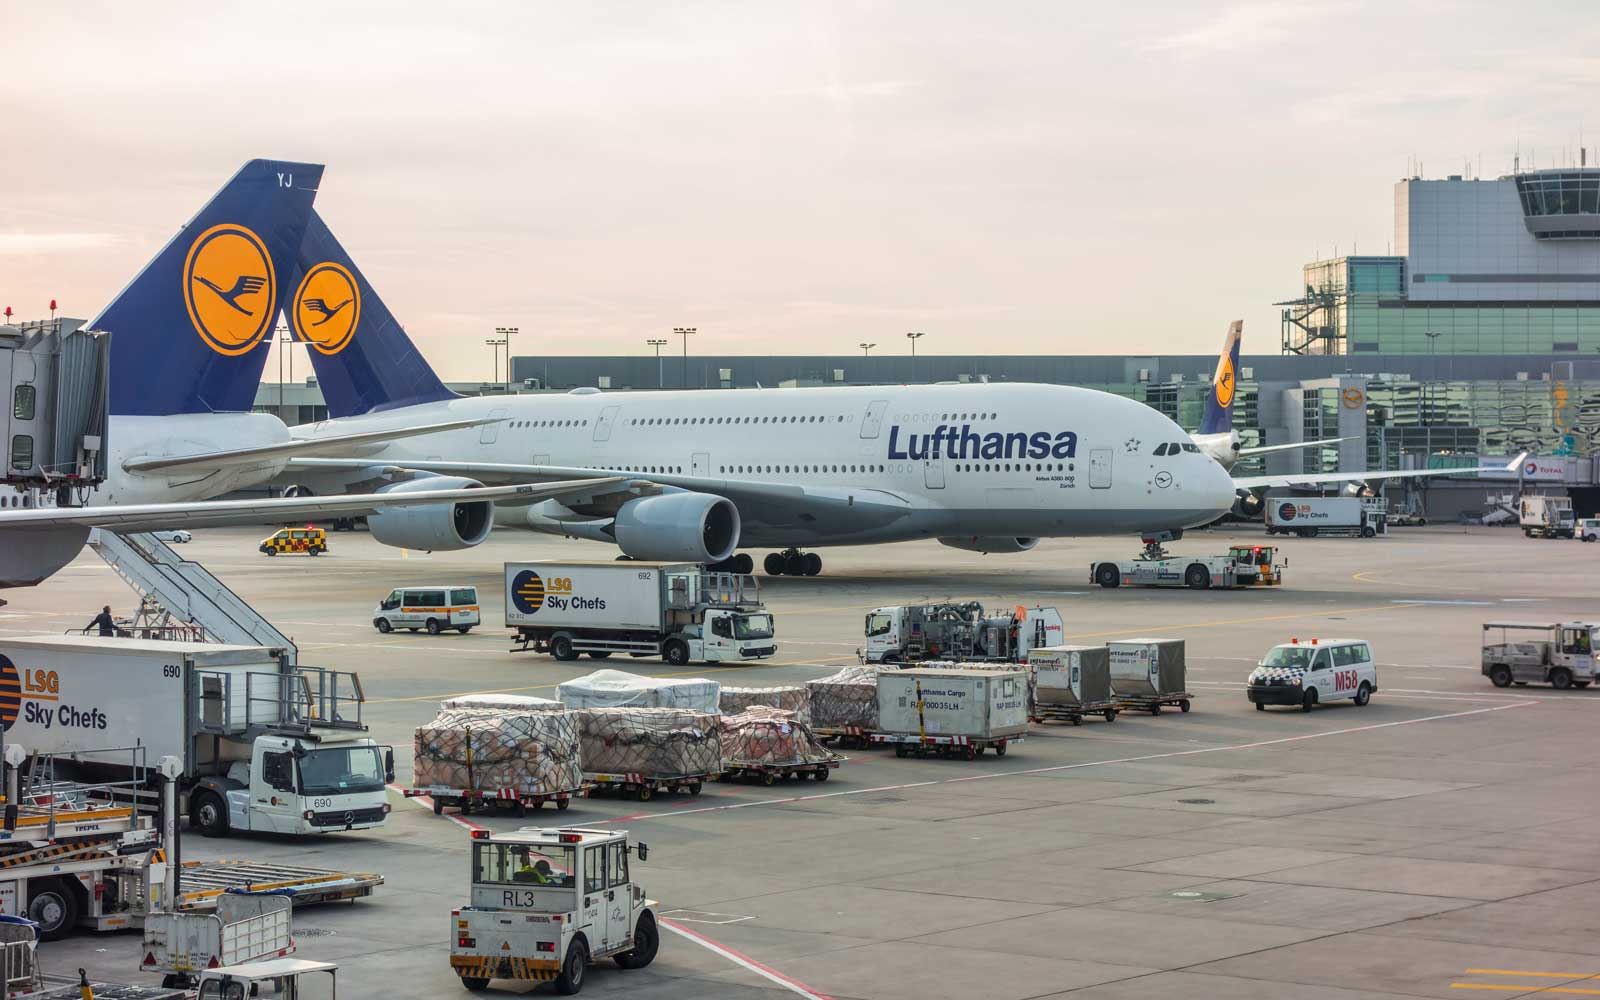 Lufthansa Airlines Loses Cat During Transit